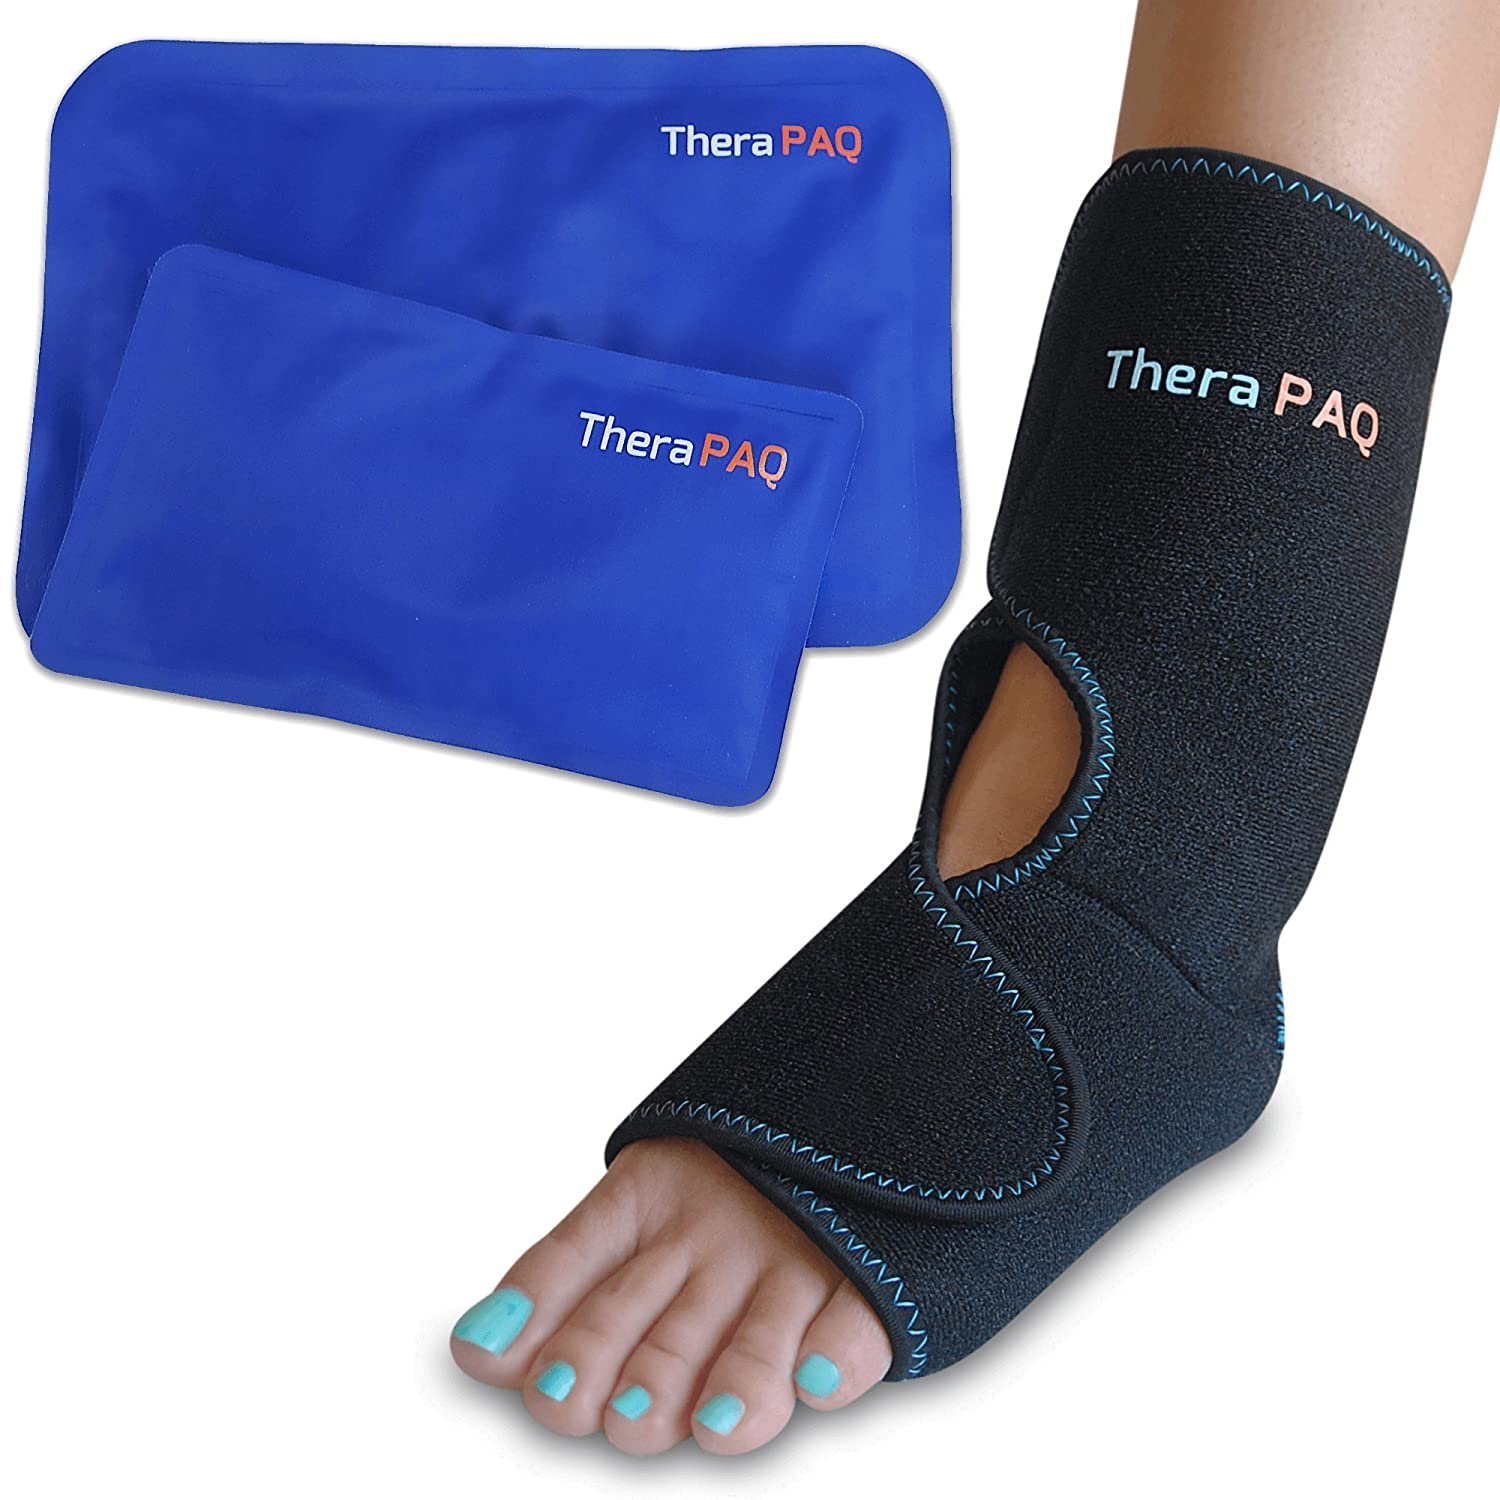 Foot & Ankle Pain Relief Ice Wrap with 2 Hot/Cold Gel Packs by TheraPAQ | Best for Achilles Tendon Injuries, Plantar Fasciitis, Bursitis & Sore Feet | Microwaveable, Freezable and Reusable (XS-XL)